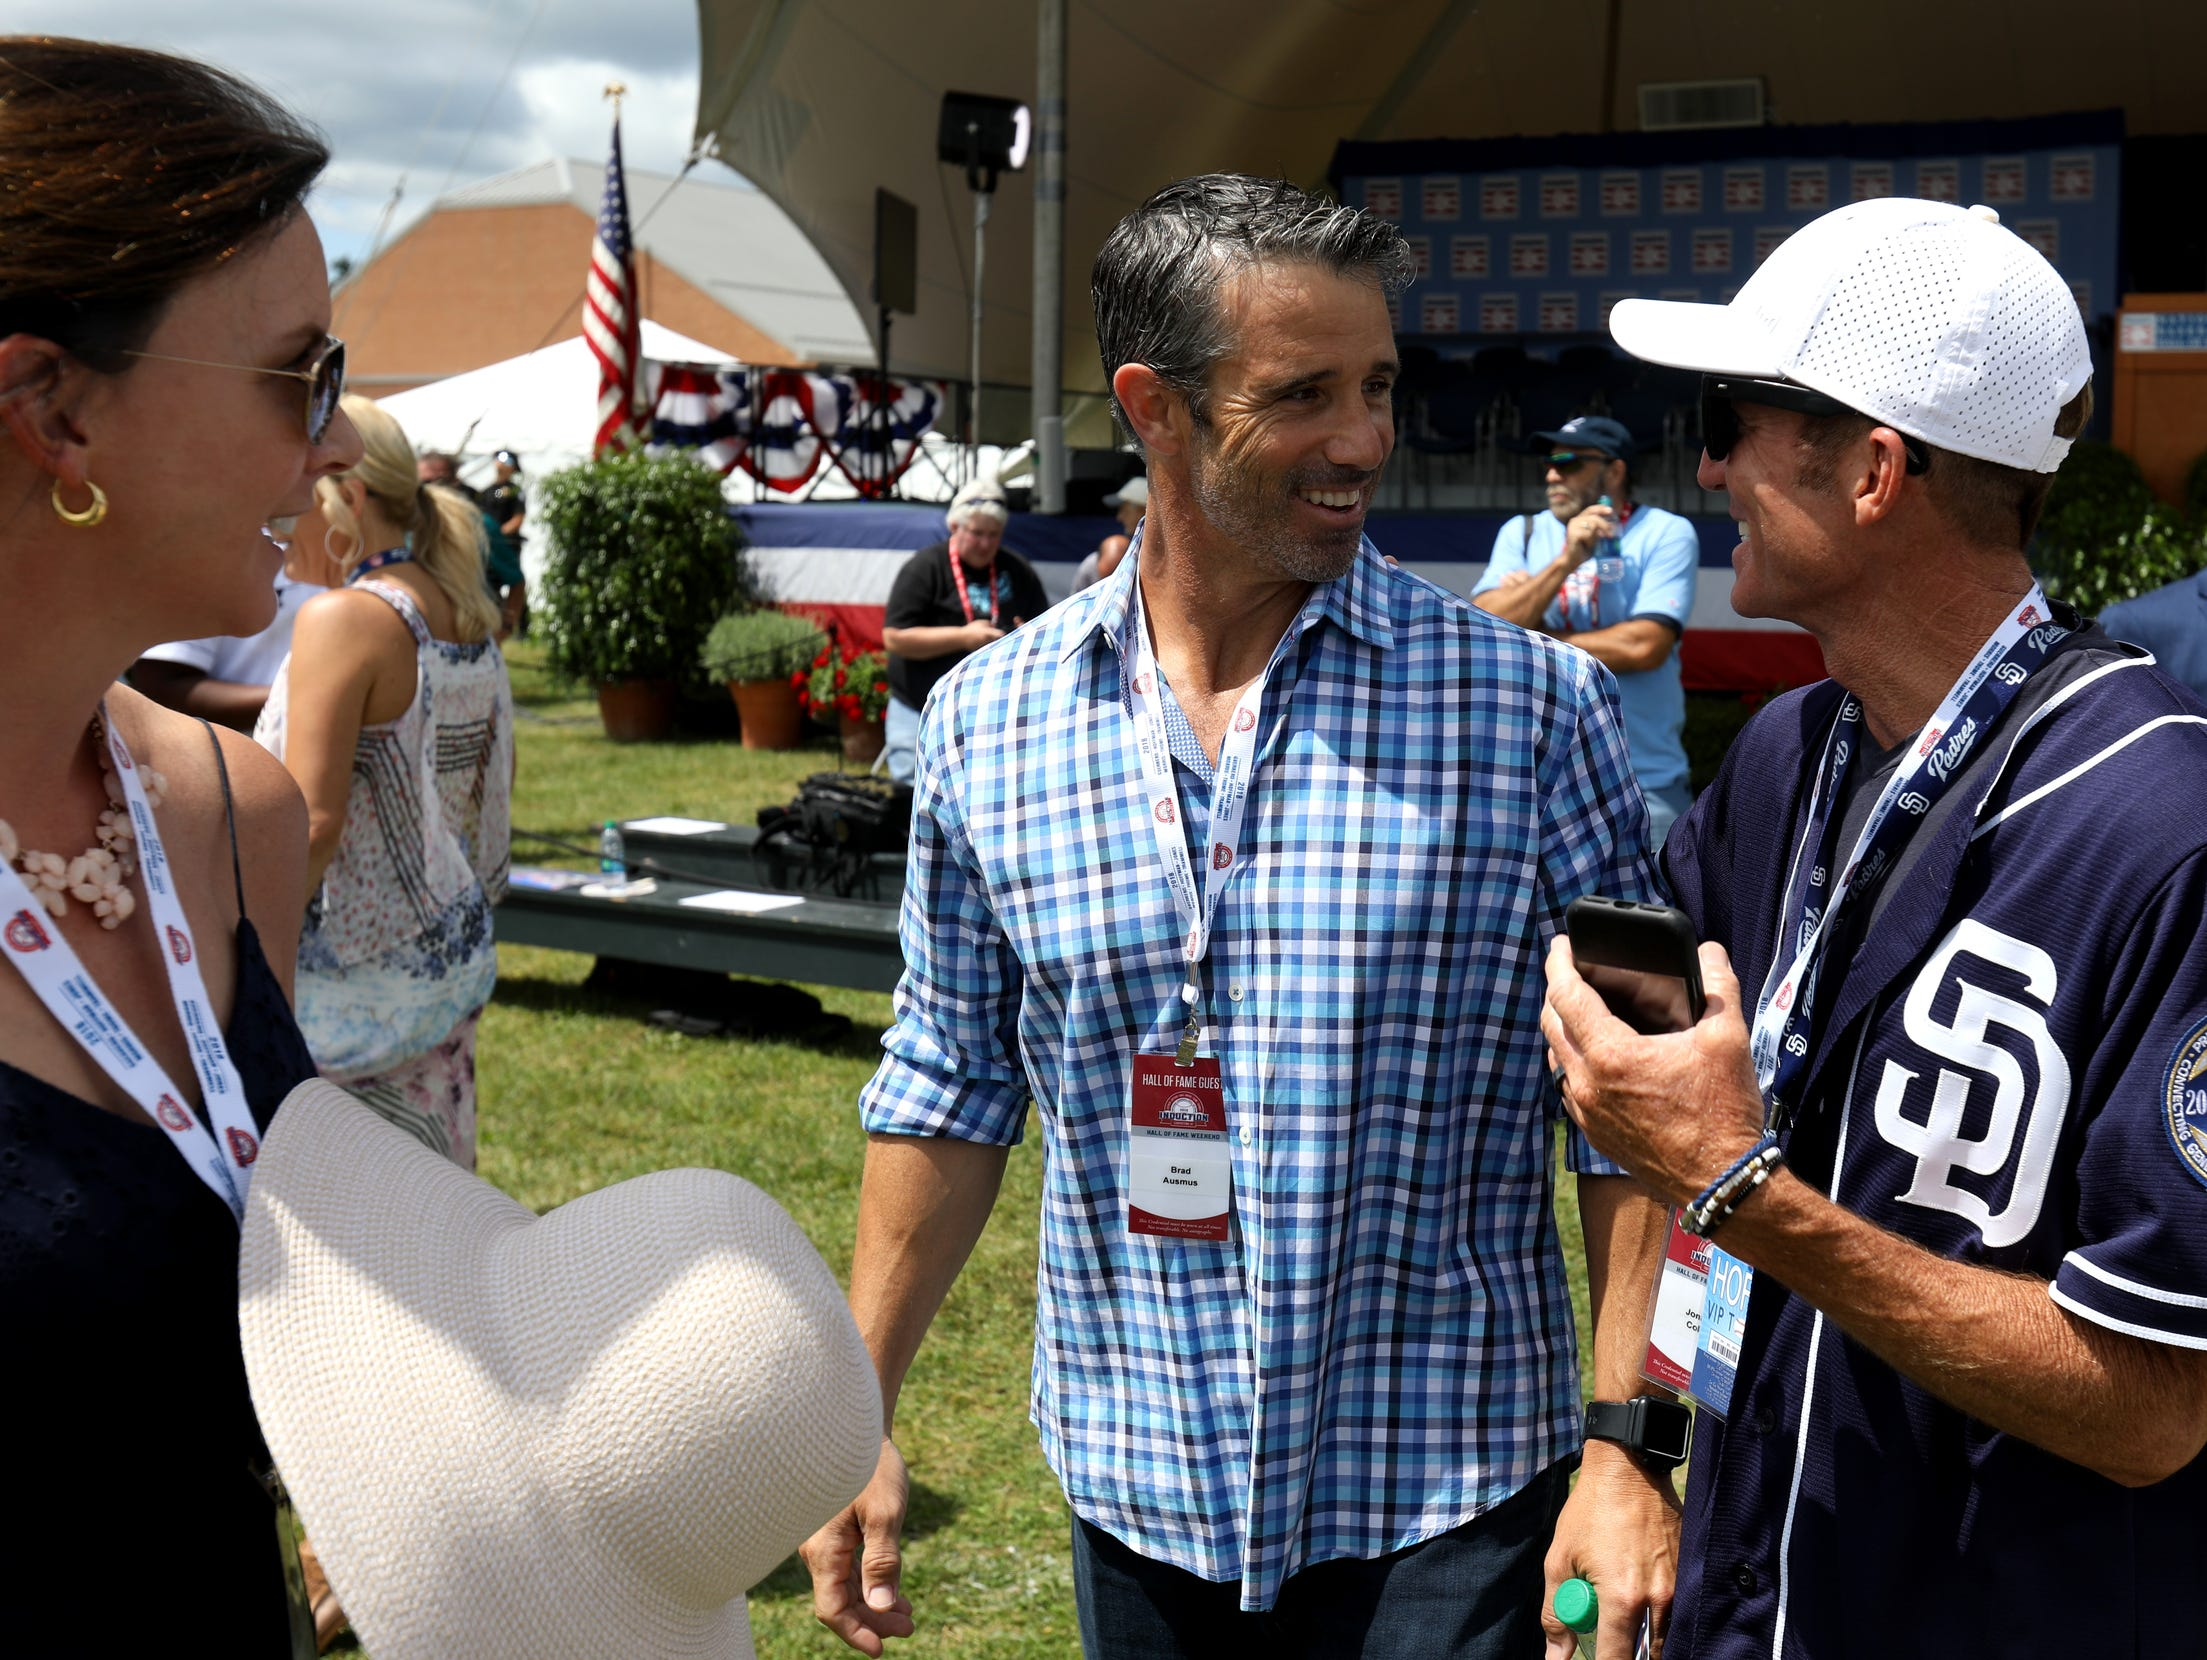 Former Detroit Tigers player and manager Brad Ausmus talks with friends before the start of the Baseball Hall of Fame induction ceremony at the Clark Sports Center after the National Baseball Hall of Fame induction ceremony in Cooperstown, N.Y. on Sunday, July 29, 2018.